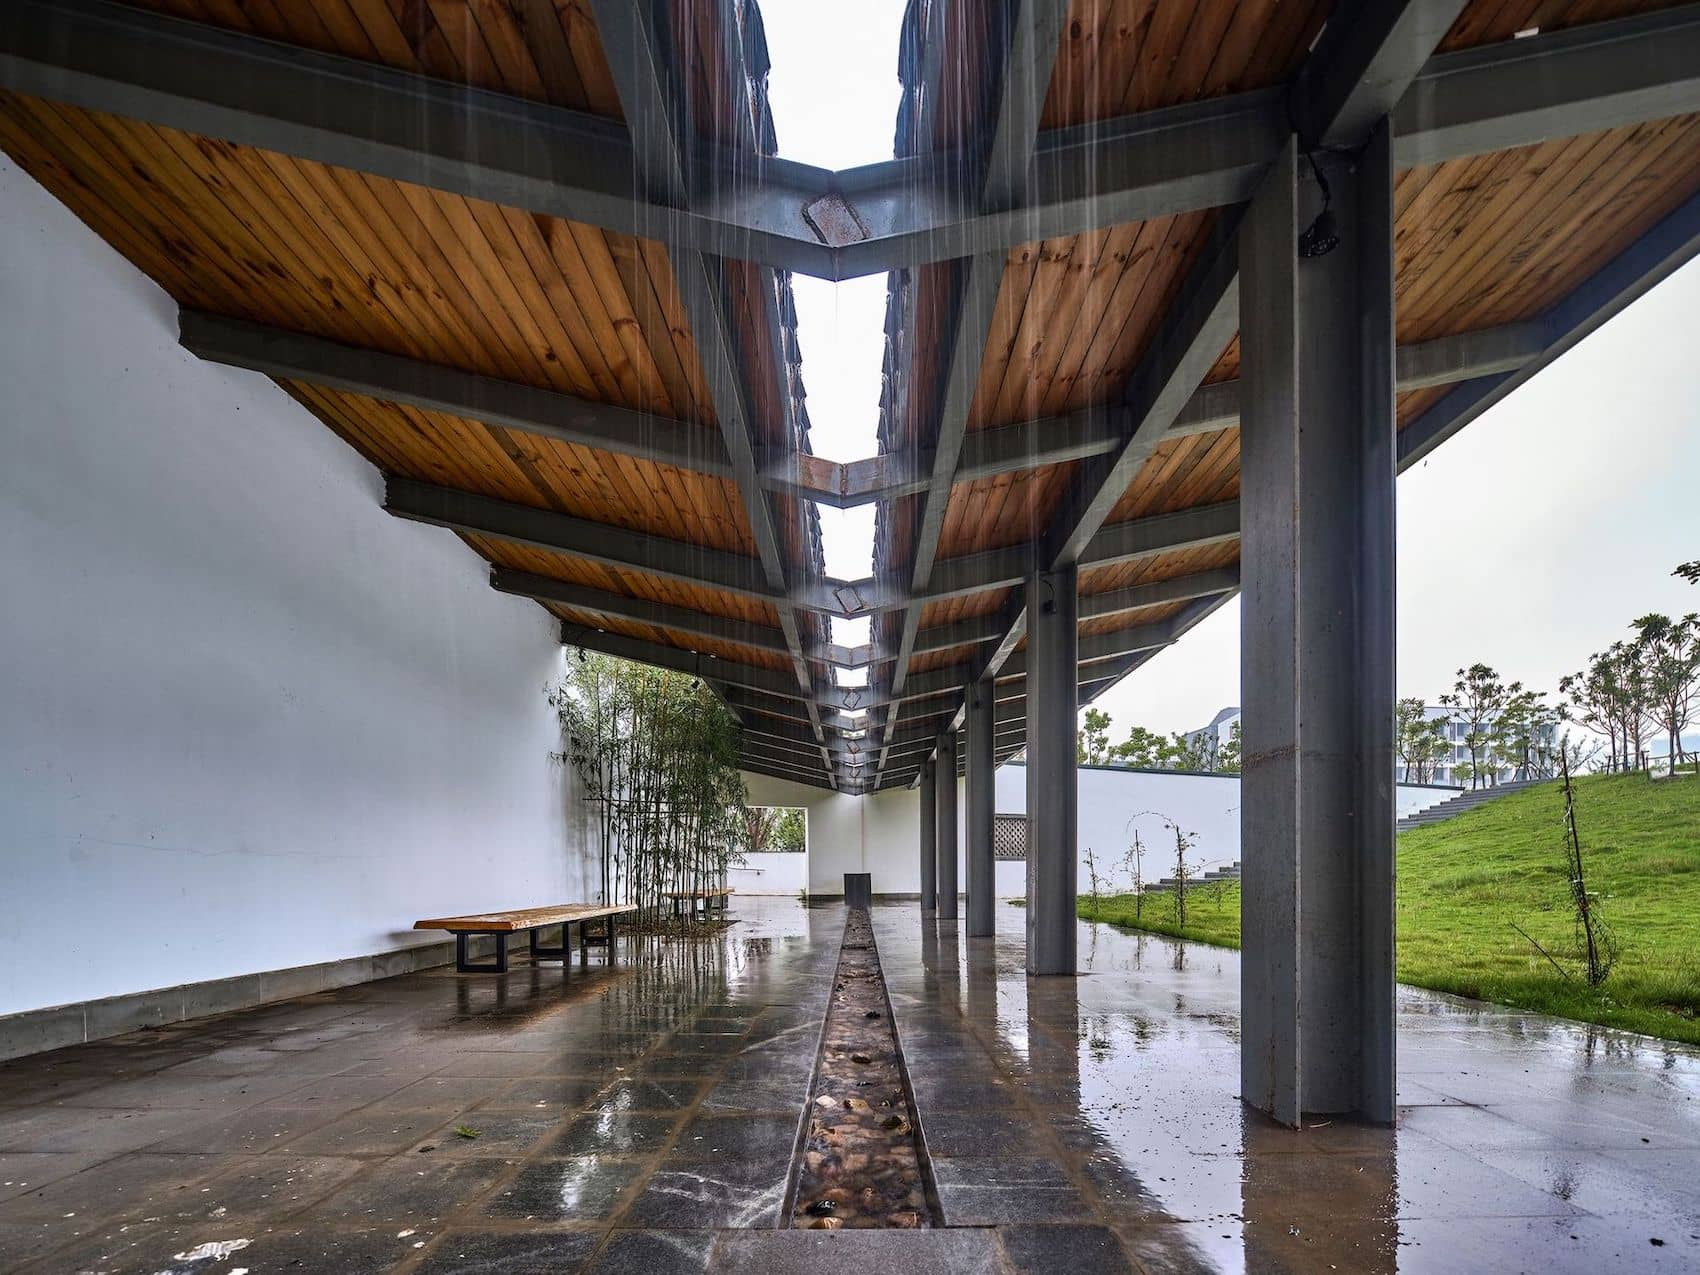 Interior Architecture Photography Tips